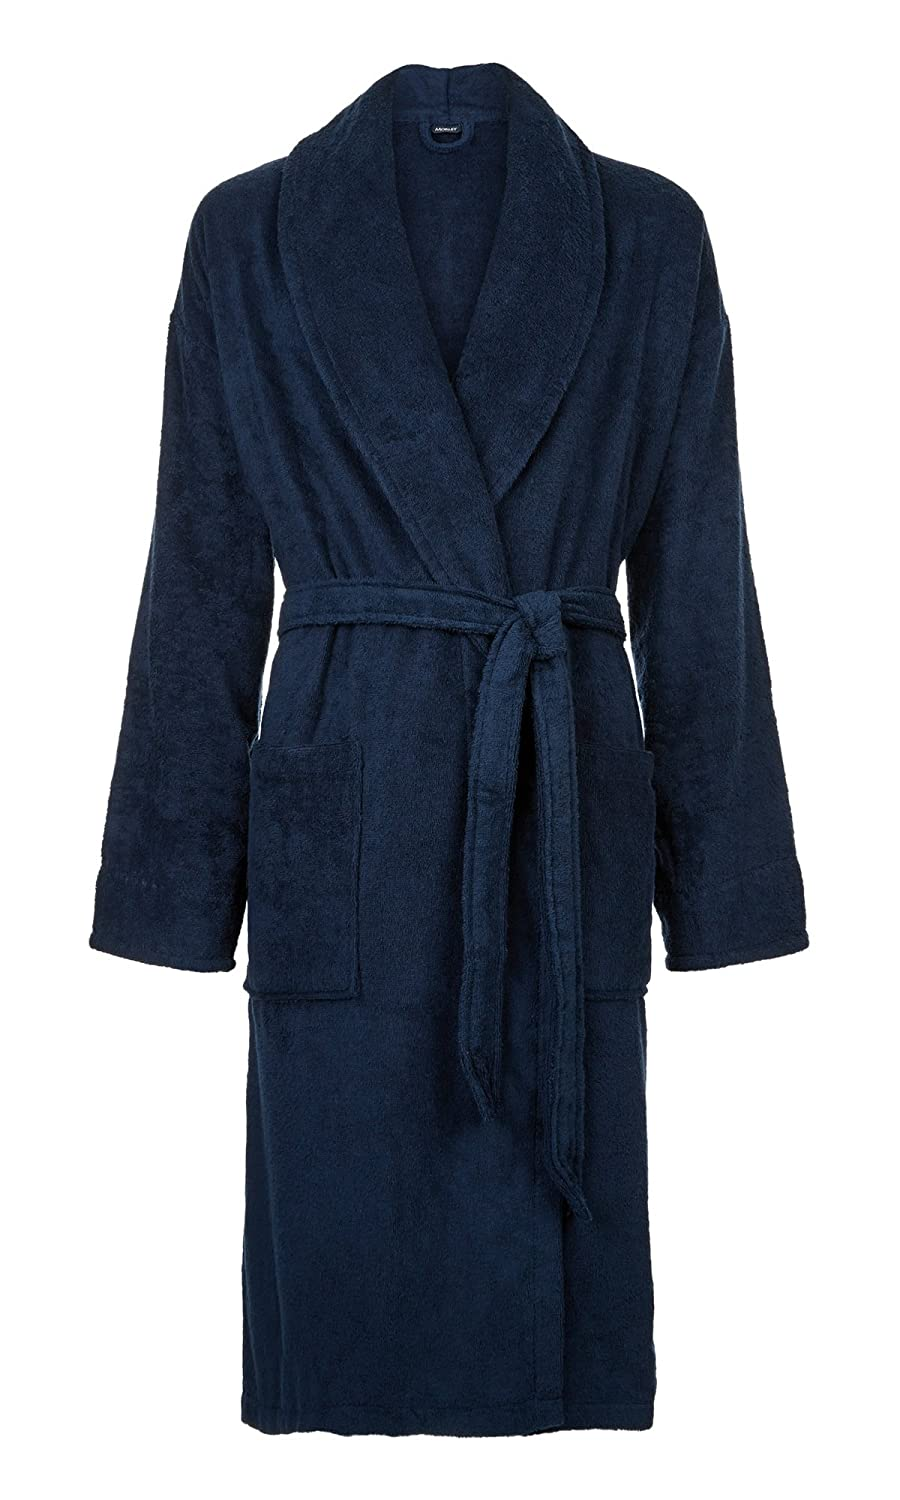 Morley Mens Slipstream Cotton Towelling Bath Robe Dressing Gown US07M